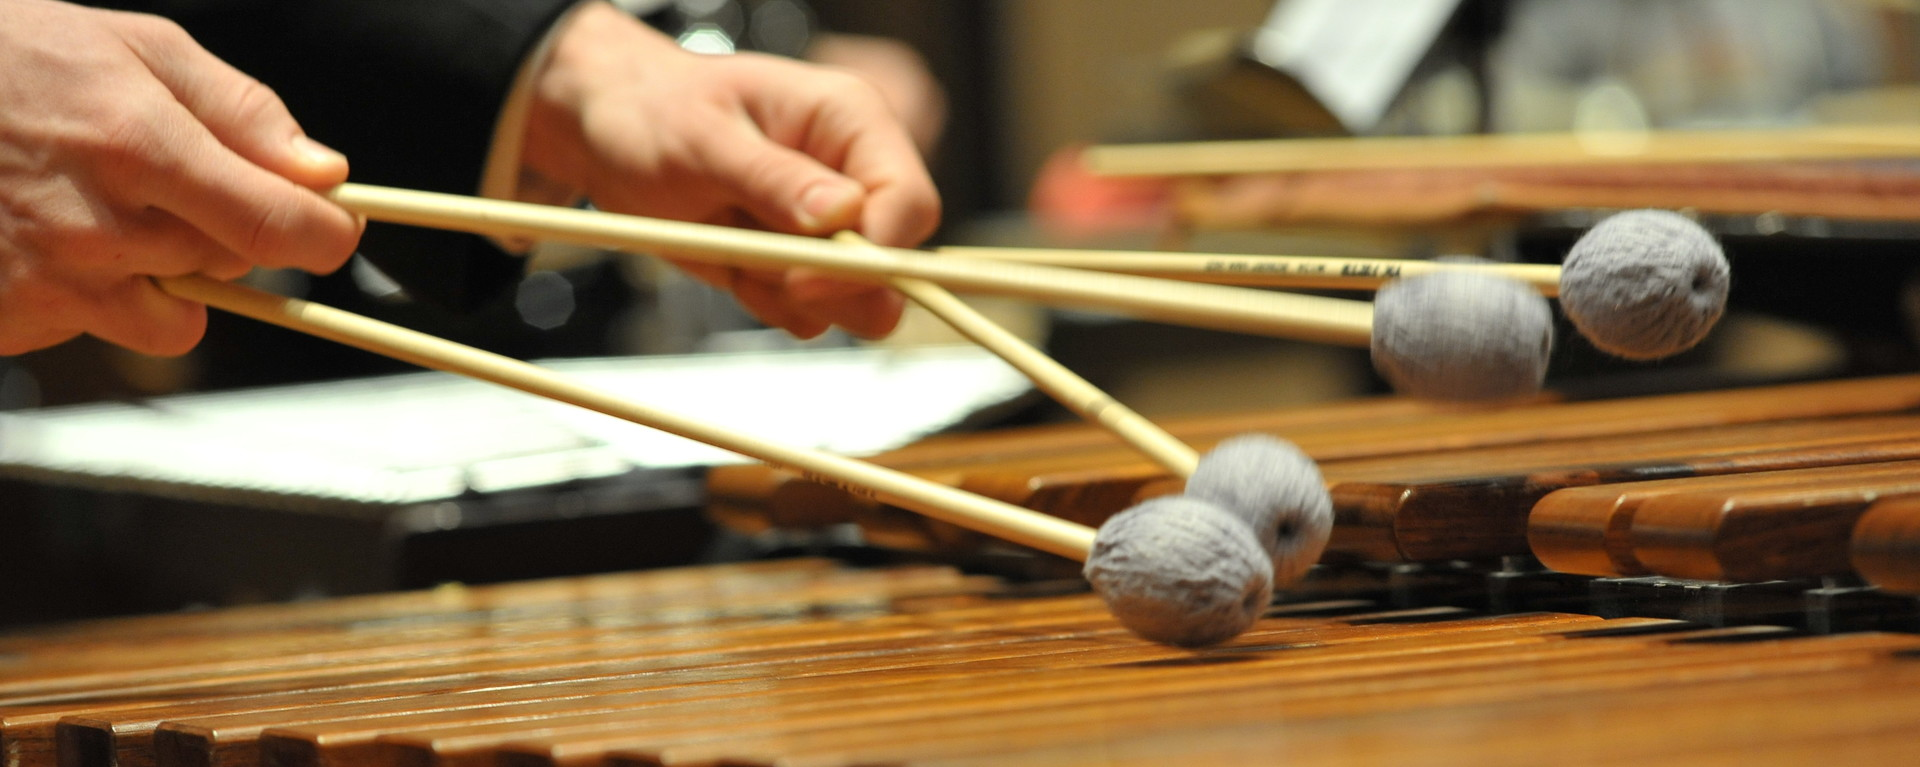 Closeup image of a person playing the xylophone